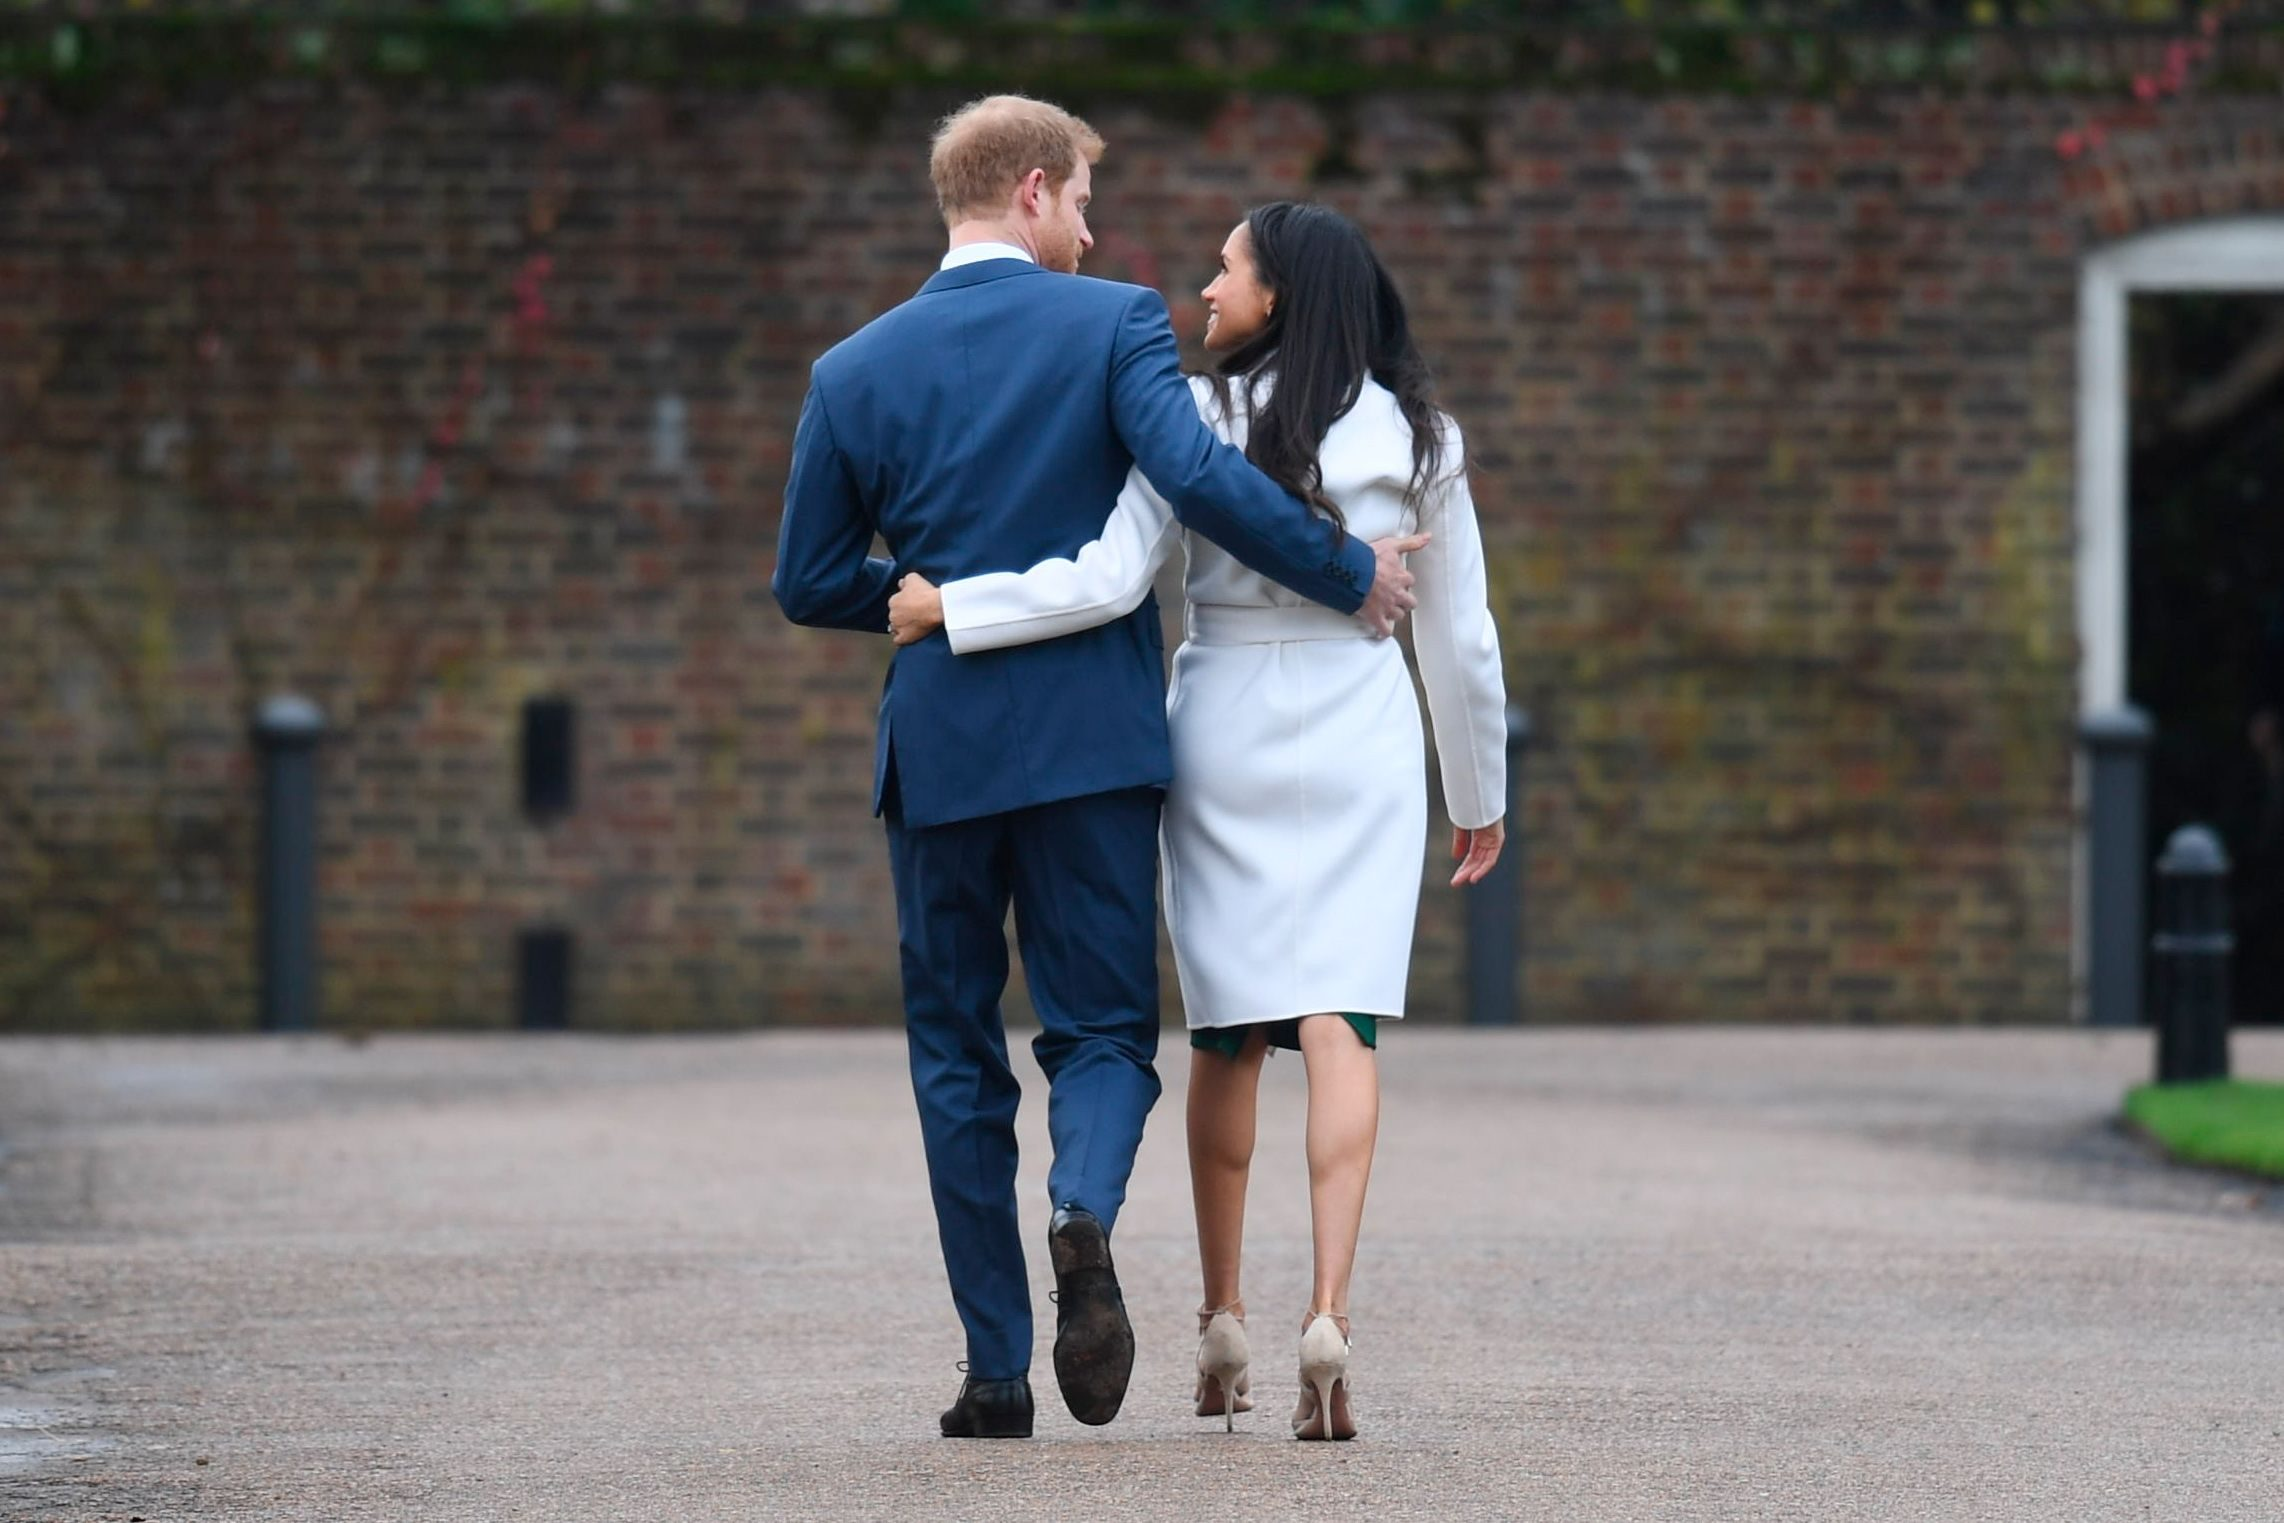 Mandatory Credit: Photo by Pete Summers/Shutterstock (9243875k) Prince Harry and Meghan Markle Prince Harry and Meghan Markle engagement announcement, Kensington Palace, London, UK - 27 Nov 2017